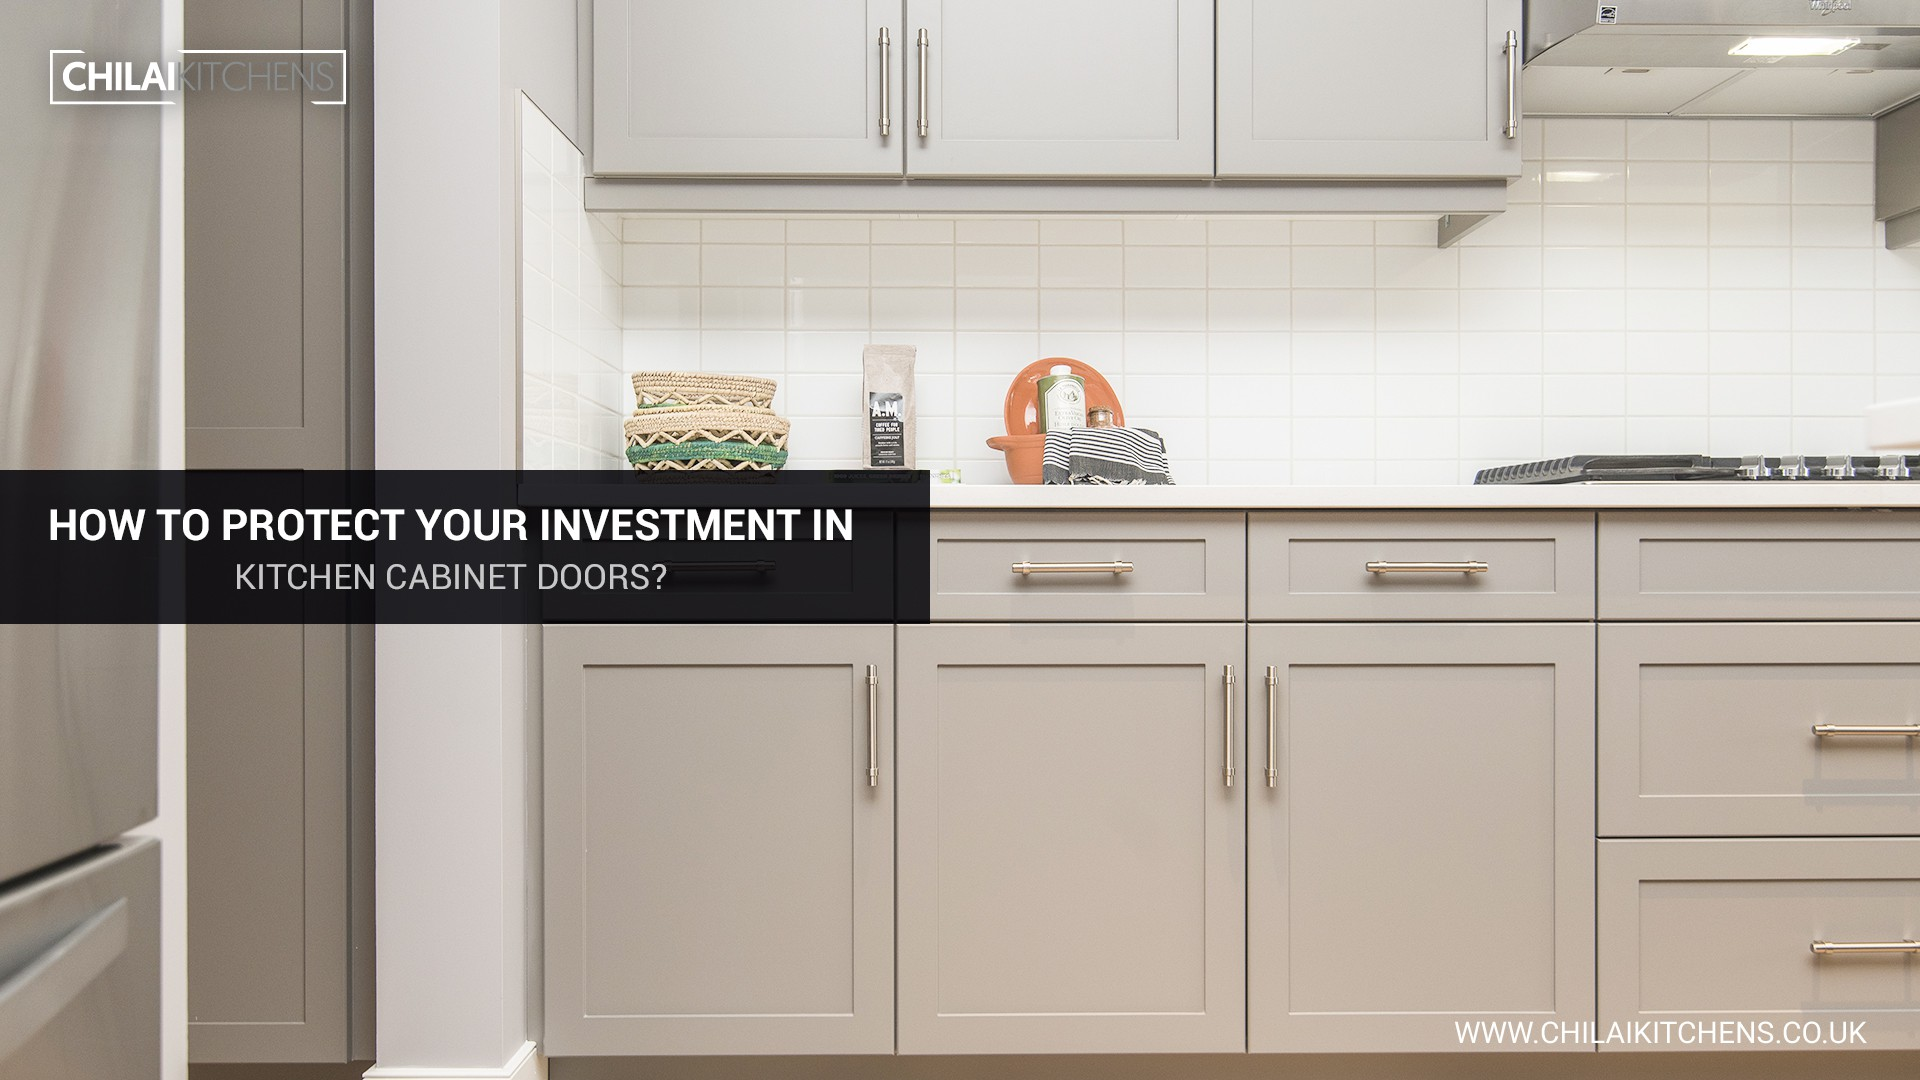 How To Protect Your Investment In Kitchen Cabinet Doors?